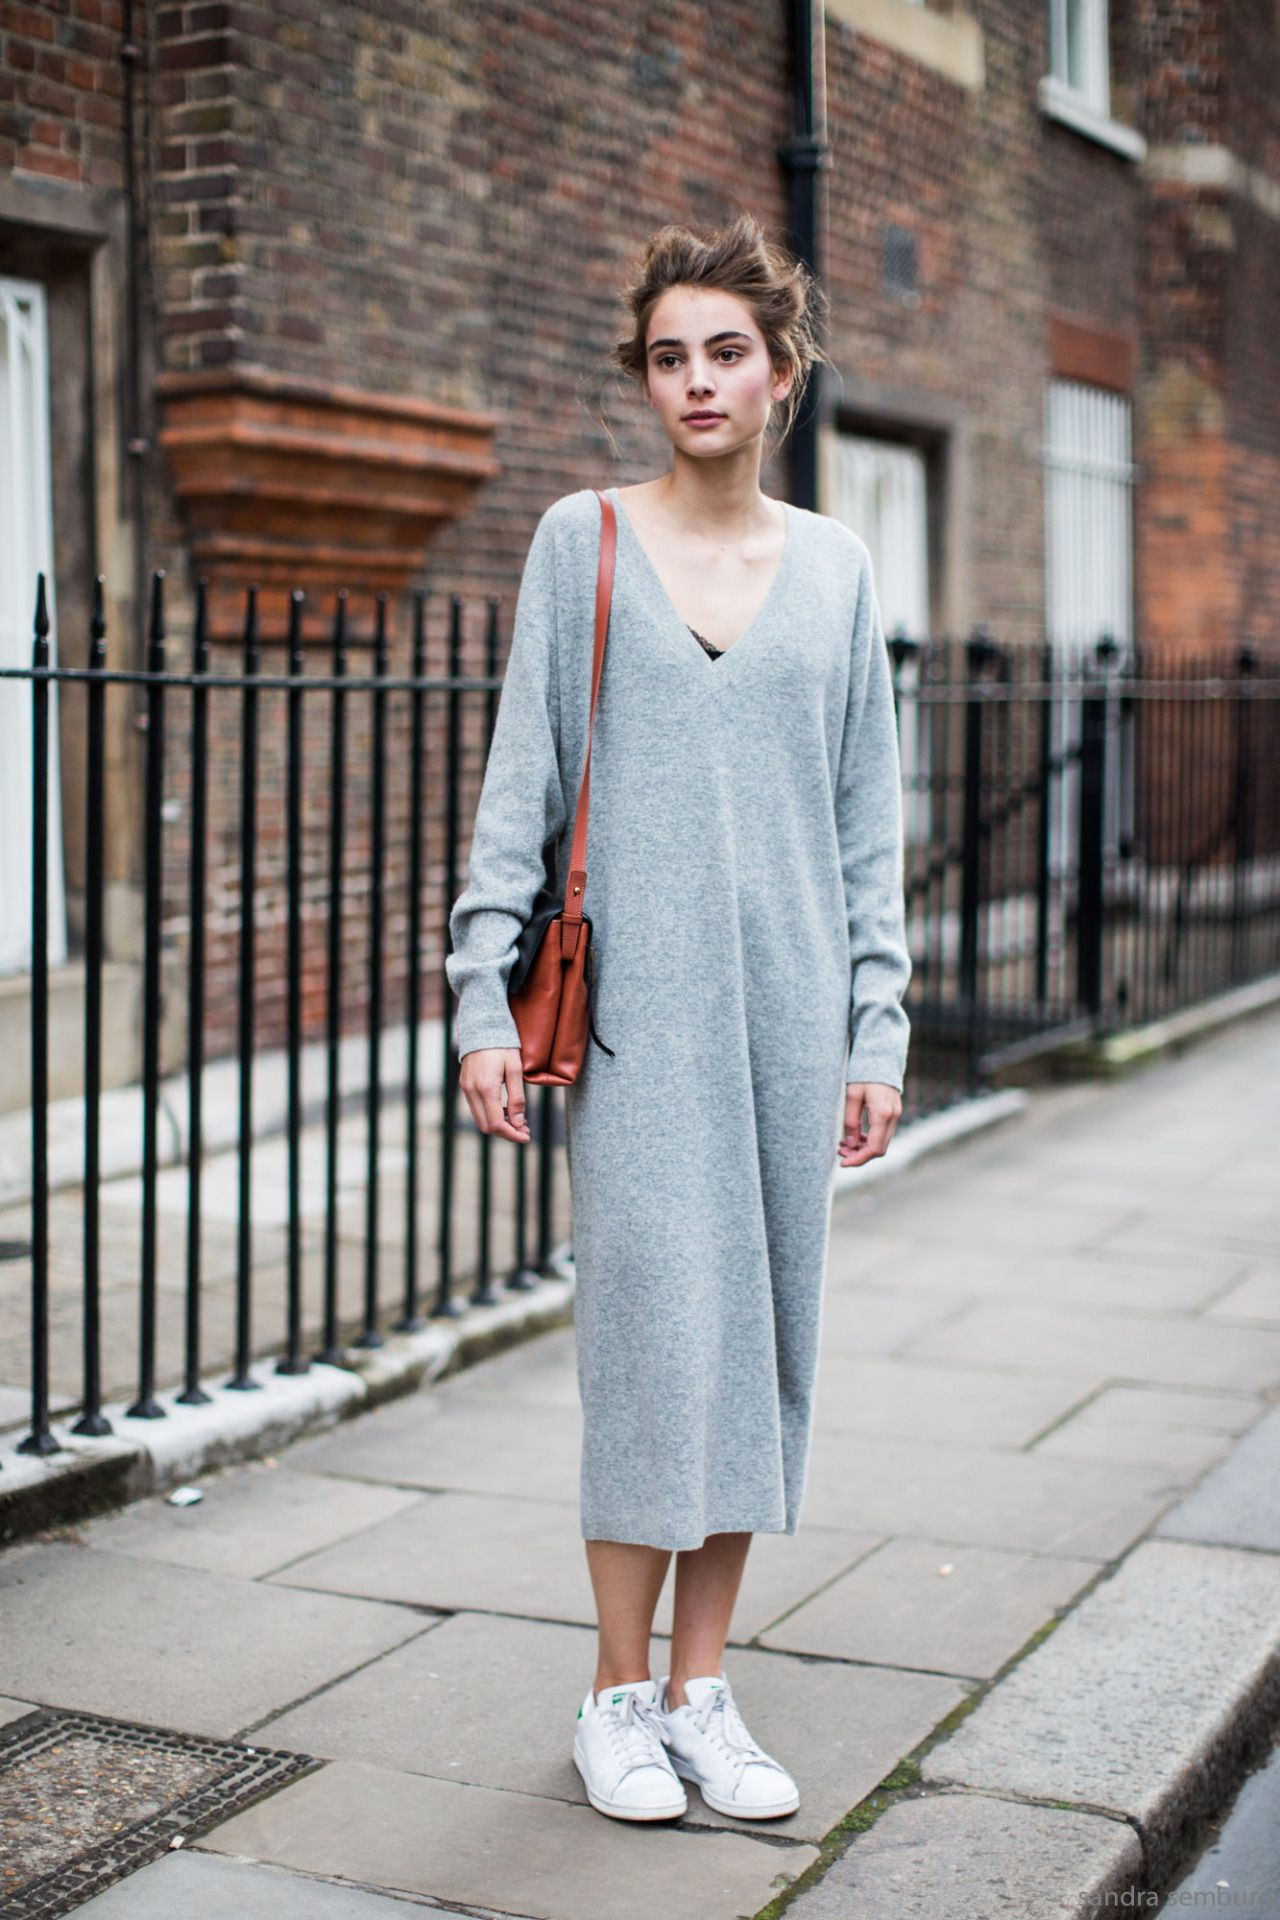 7674273dfc703 Grey v-neck midi dress with Stan Smiths.   The Kitt   Caboodle ...